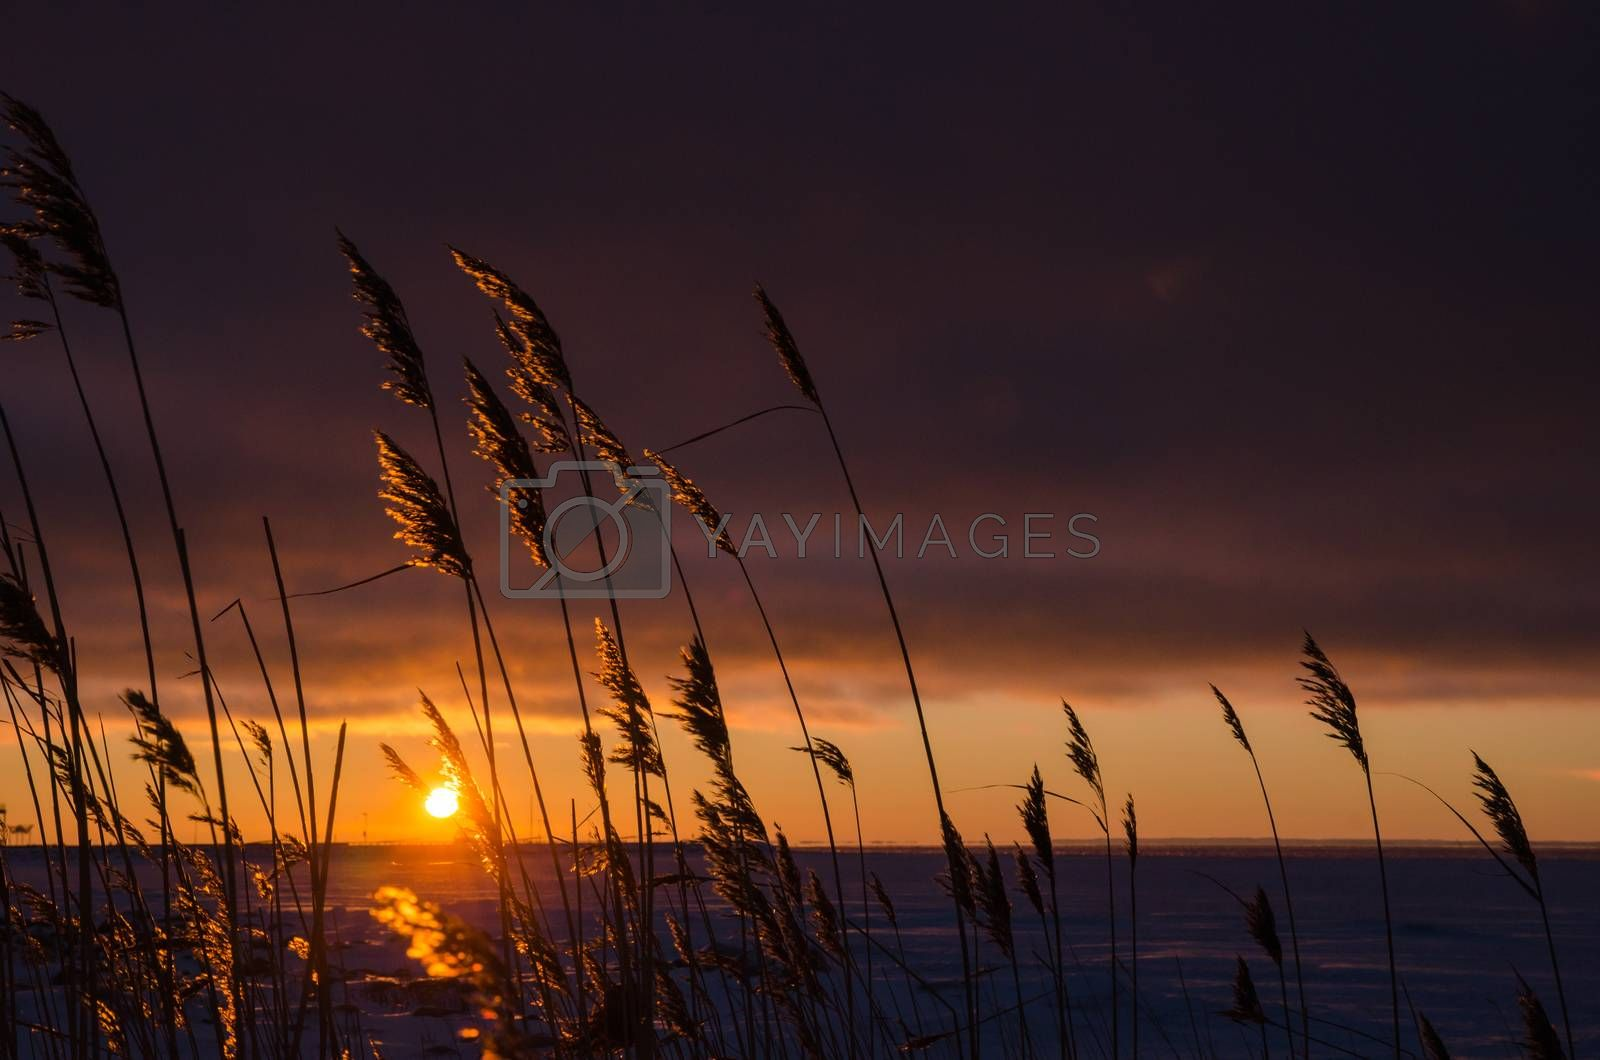 Royalty free image of Reeds by sunset by olandsfokus